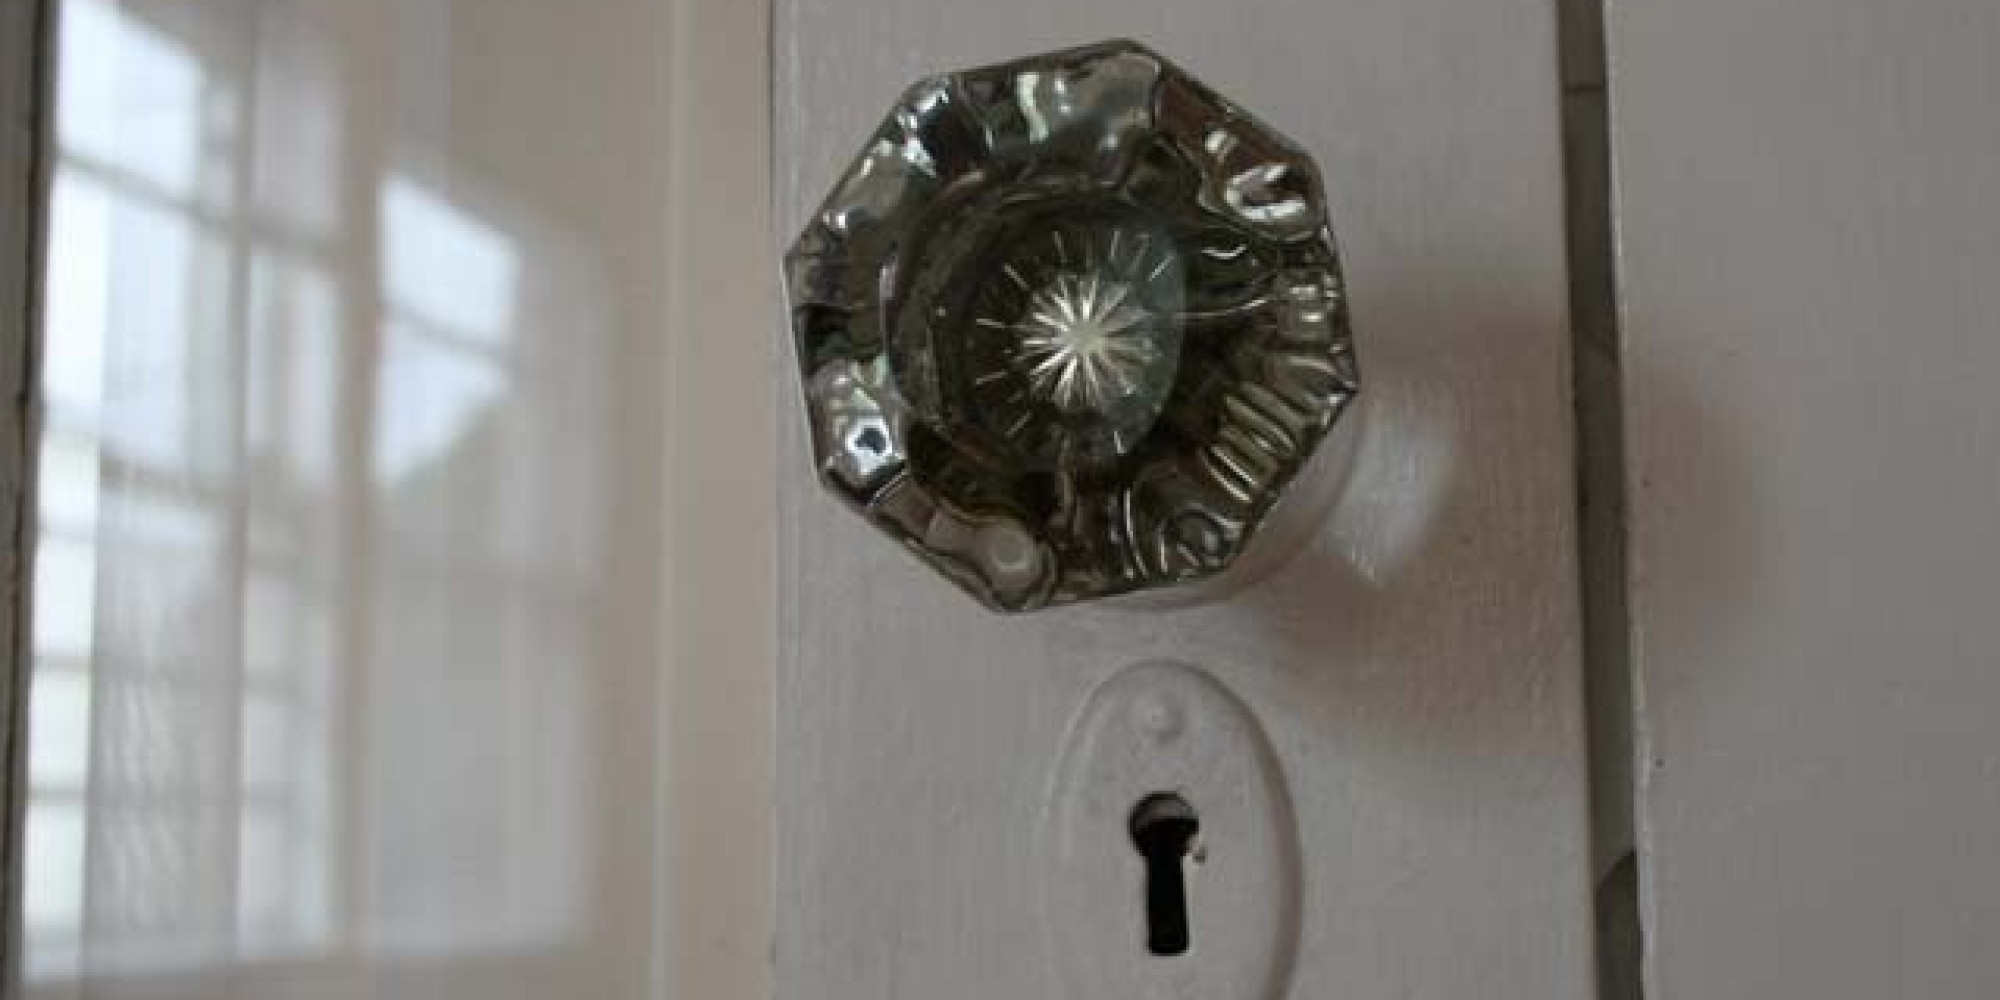 7 Best Websites For Finding Really Cool Knobs, Pulls And Decorative  Hardware | HuffPost